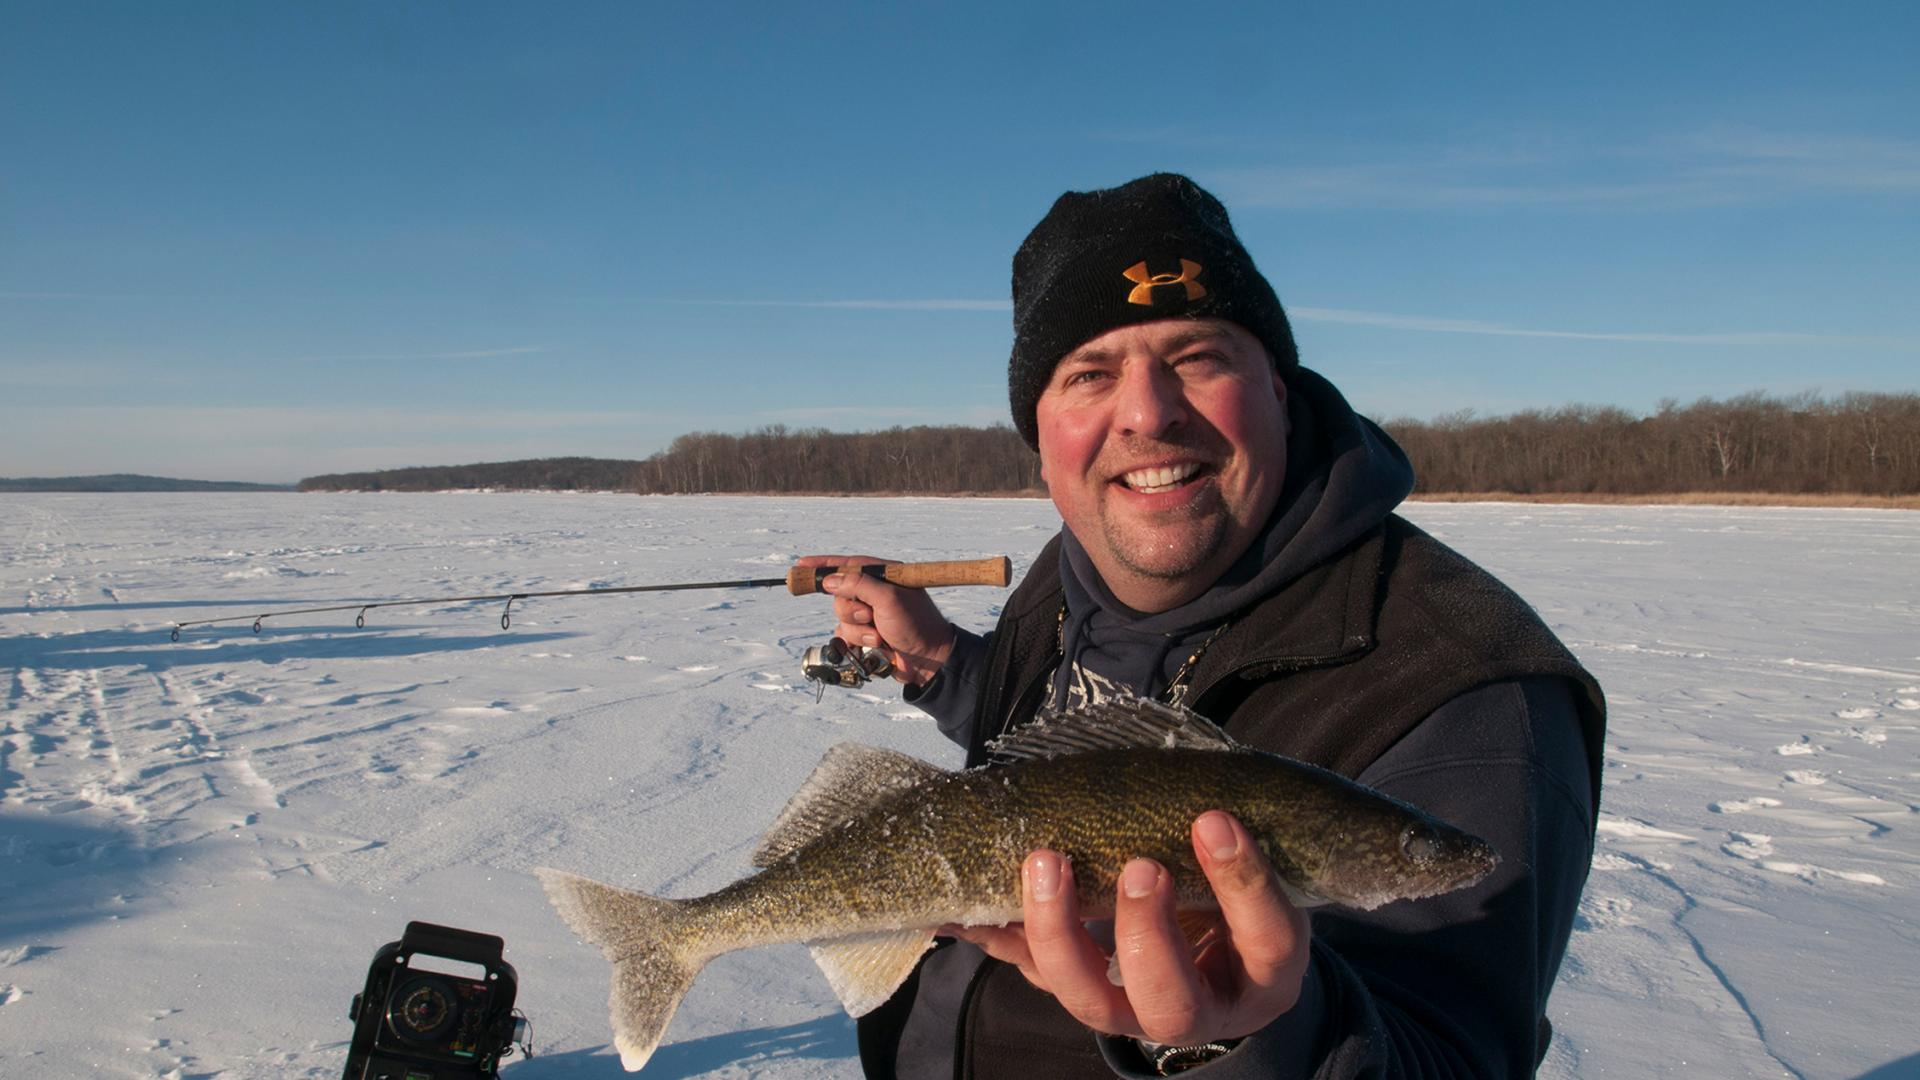 Man catching a fish while ice fishing on Leech Lake